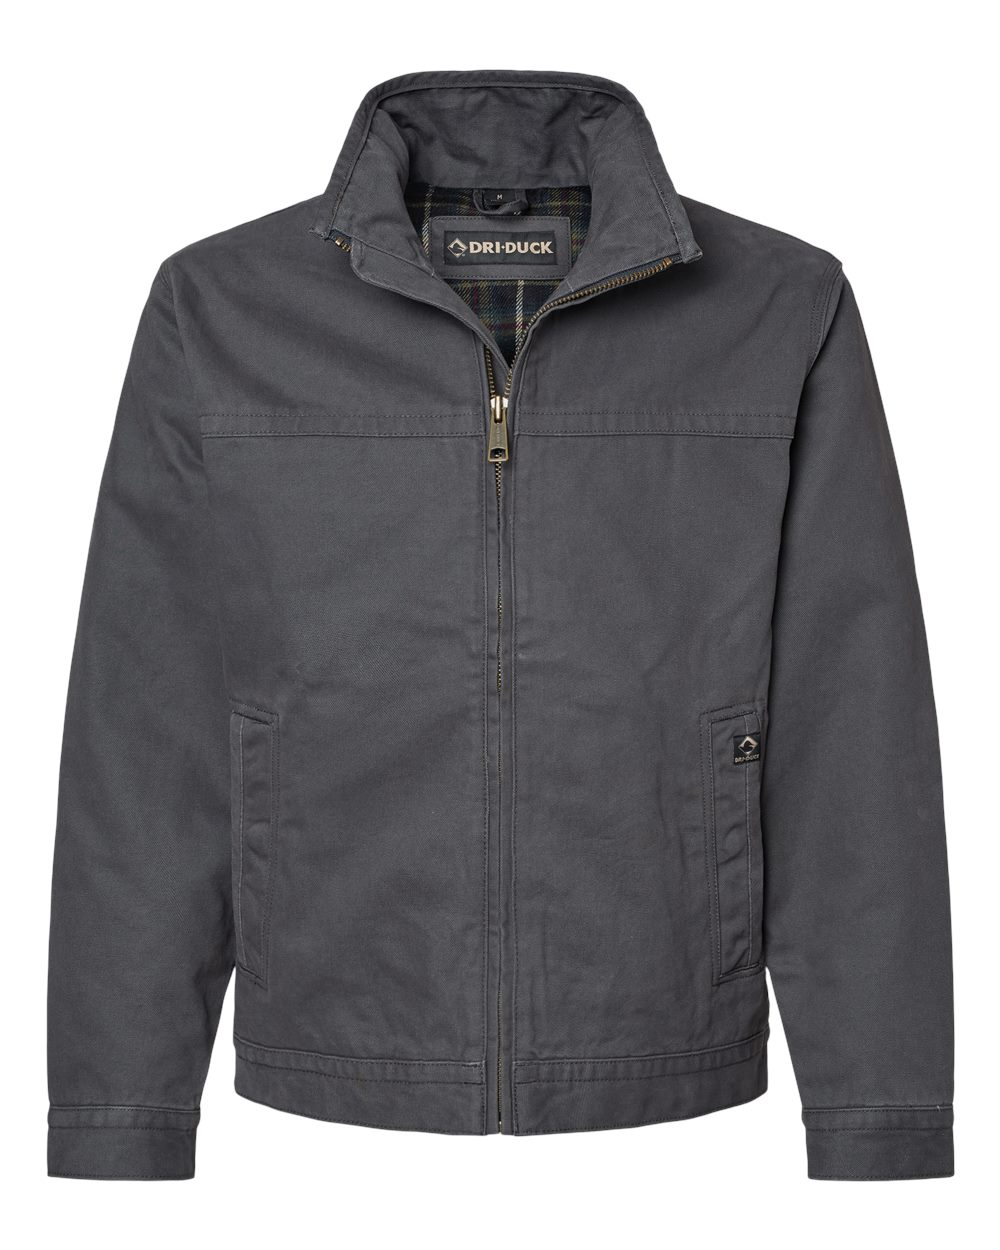 Maverick Boulder Cloth??? Jacket with Blanket Lining Tall Sizes-DRI DUCK